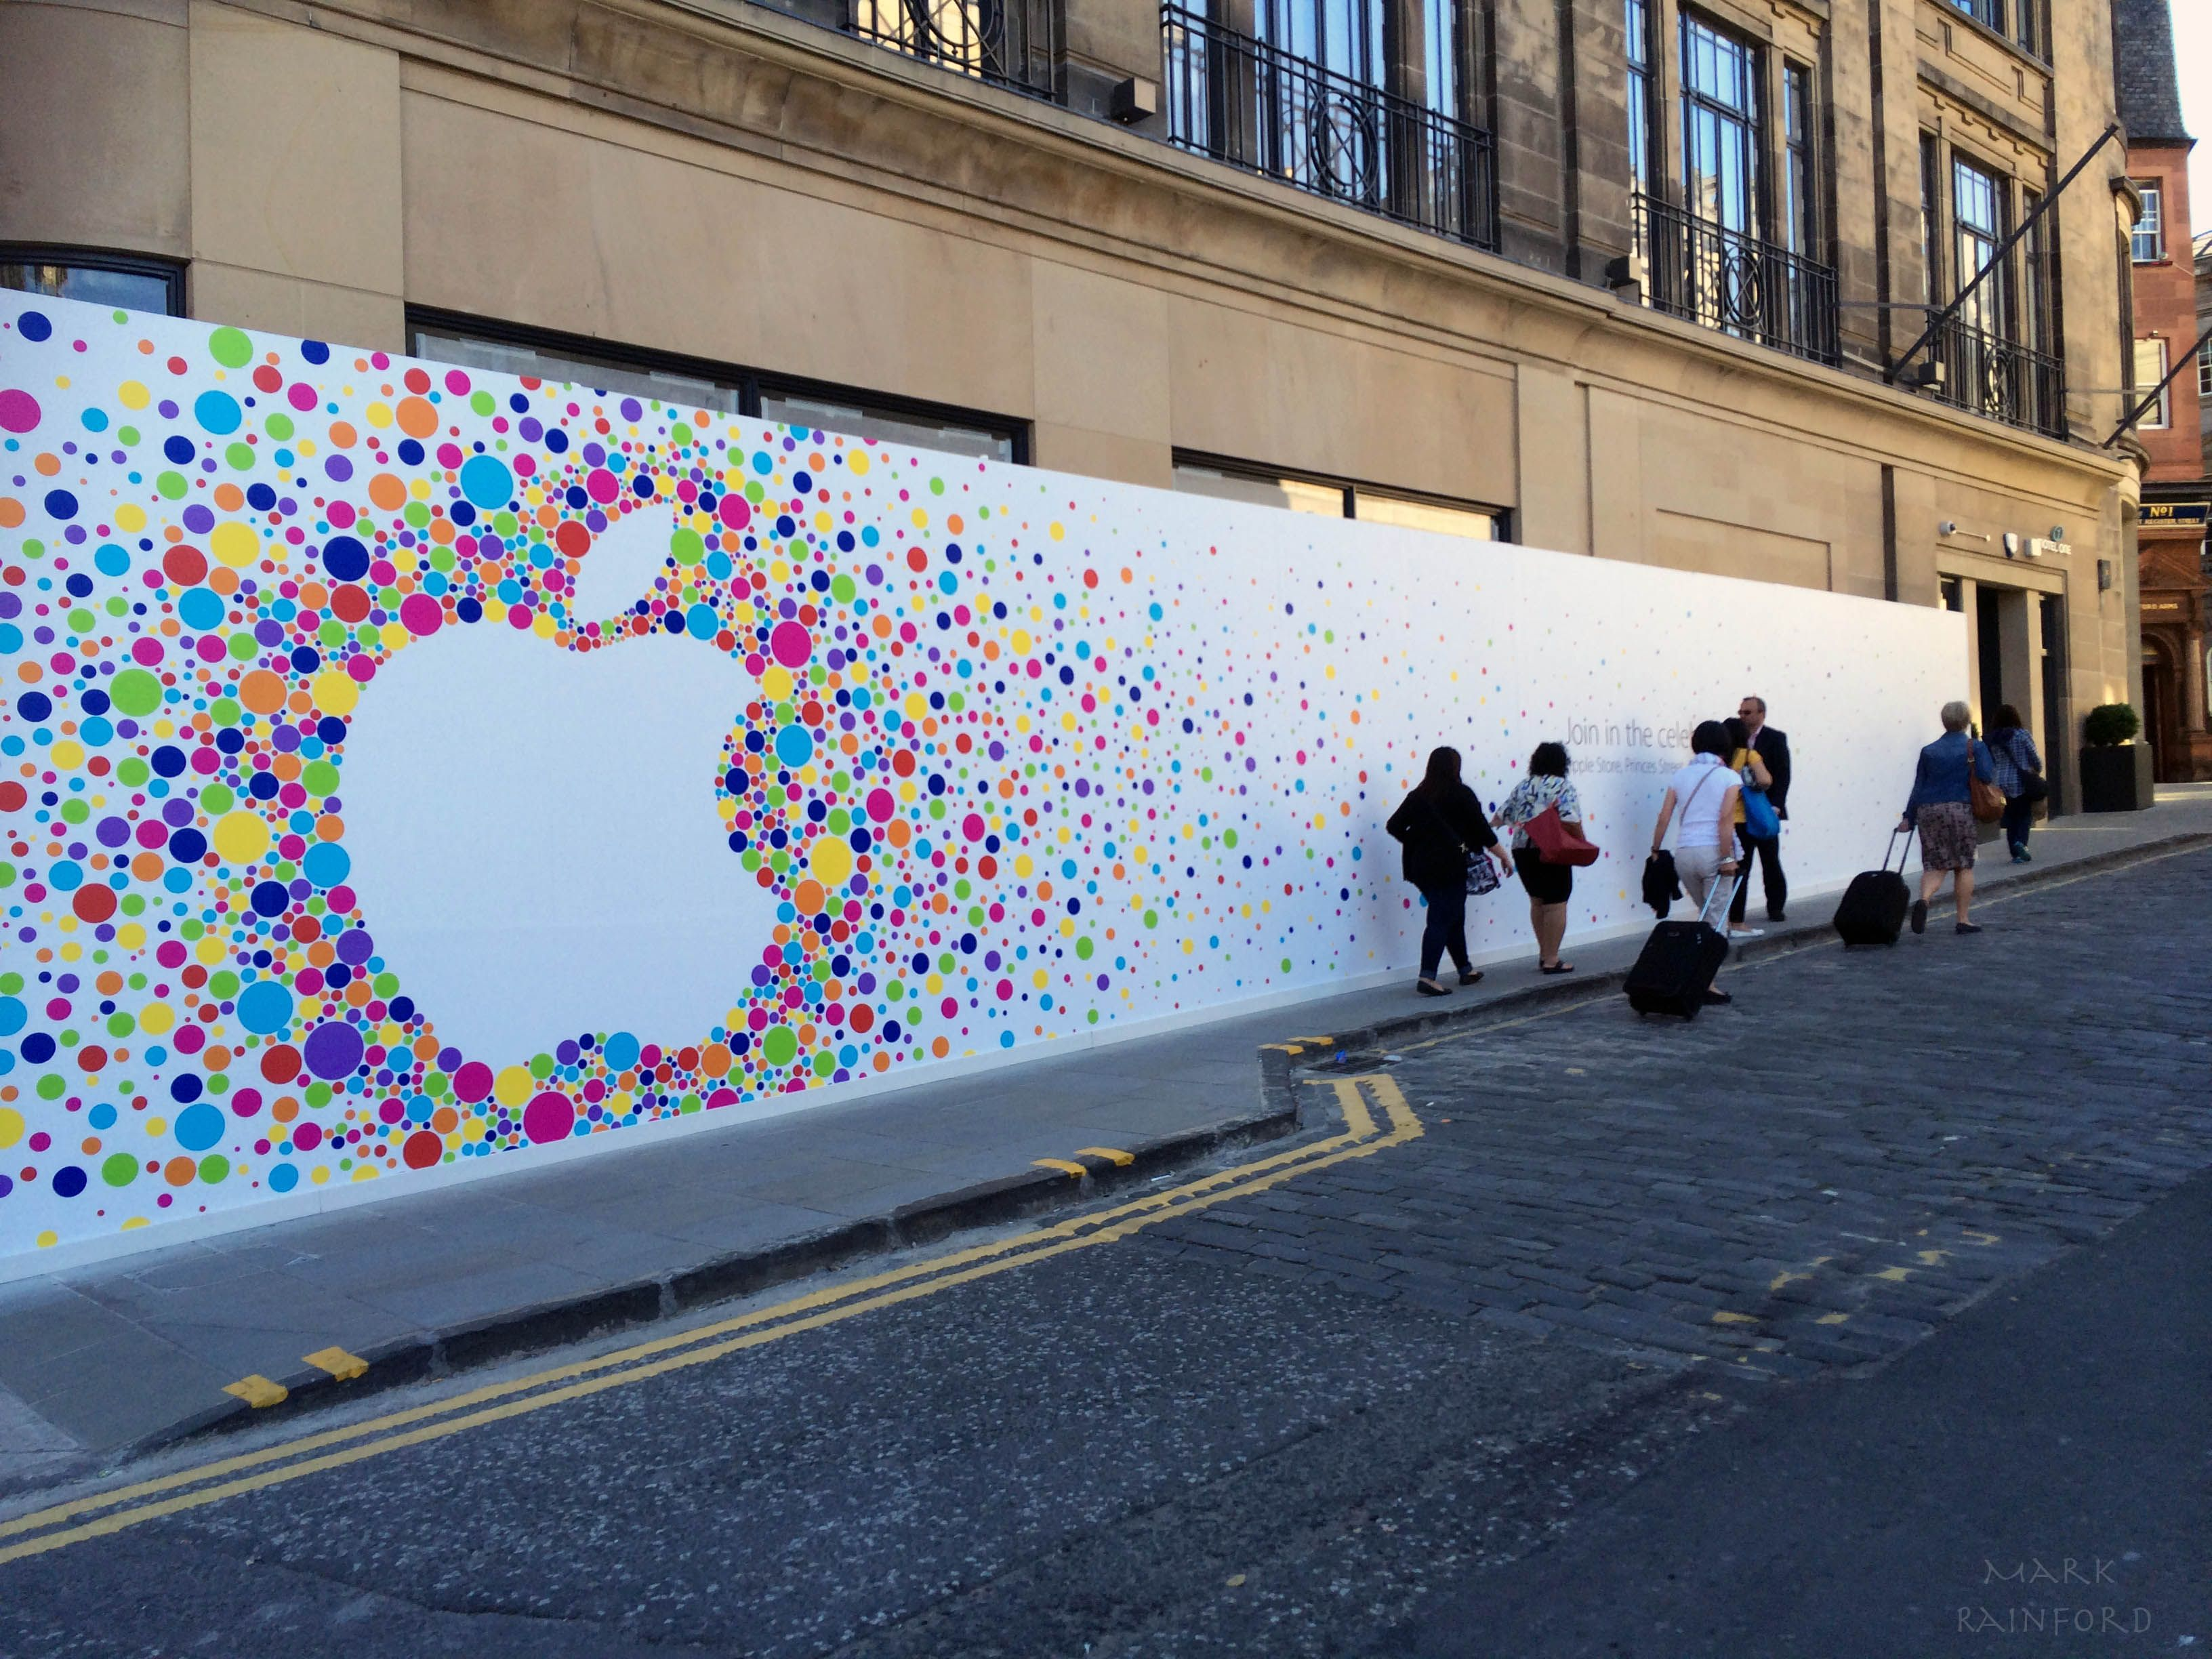 Apple Store Images Google Search Hoarding Design Wayfinding Signage Environmental Design